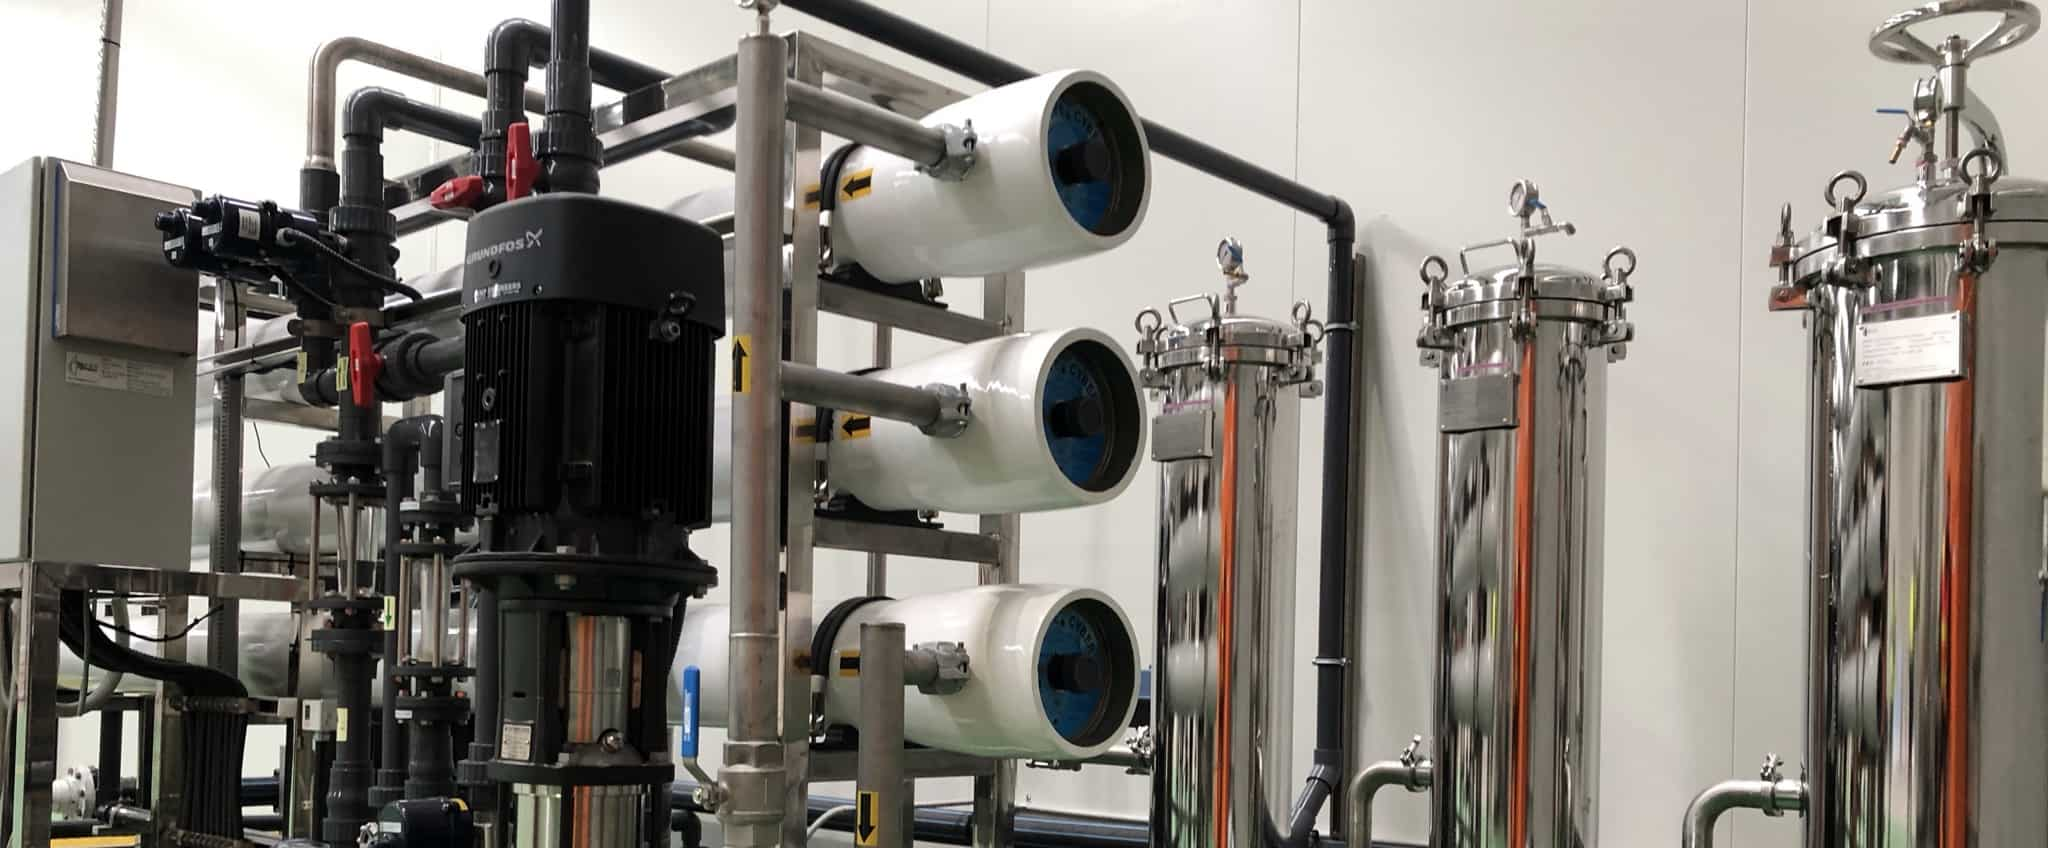 filtration projects australia water systems hardware and filters